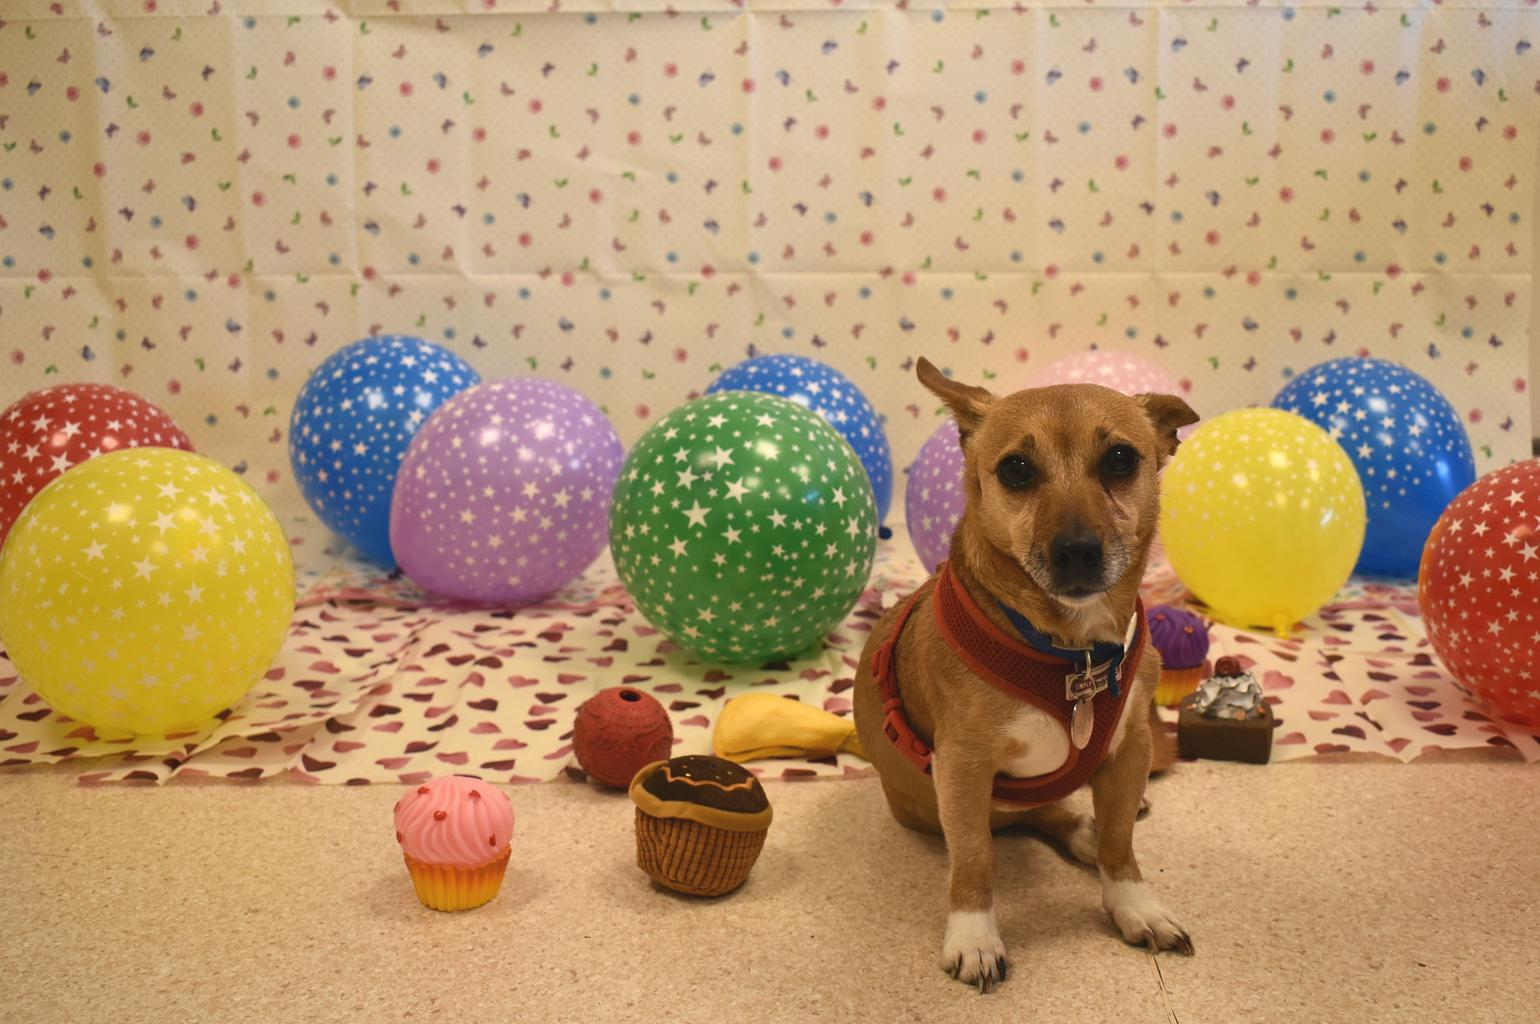 Honey's two year anniversary party. Tags: Battersea Dogs & Cats Home rescue dog